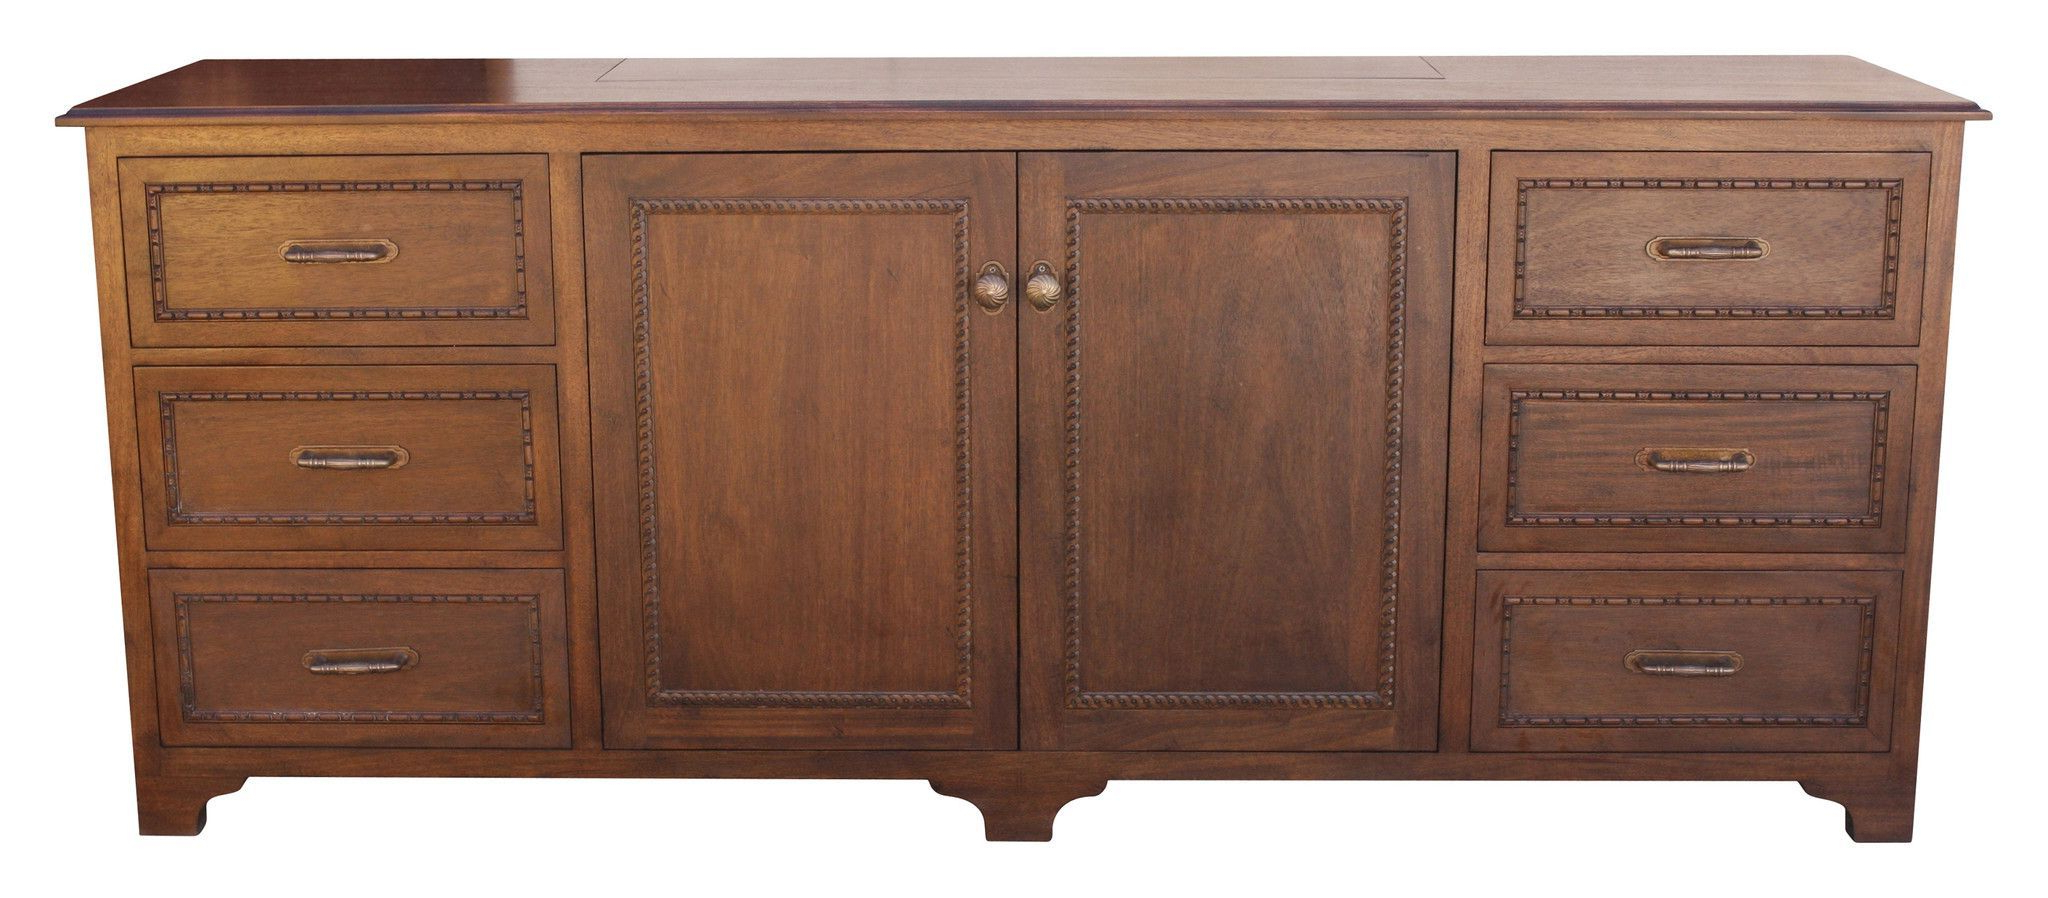 One Kings Lane Beulah 3 Door Cabinet – Pecan In 2019 With Current Chaffins Sideboards (View 16 of 20)